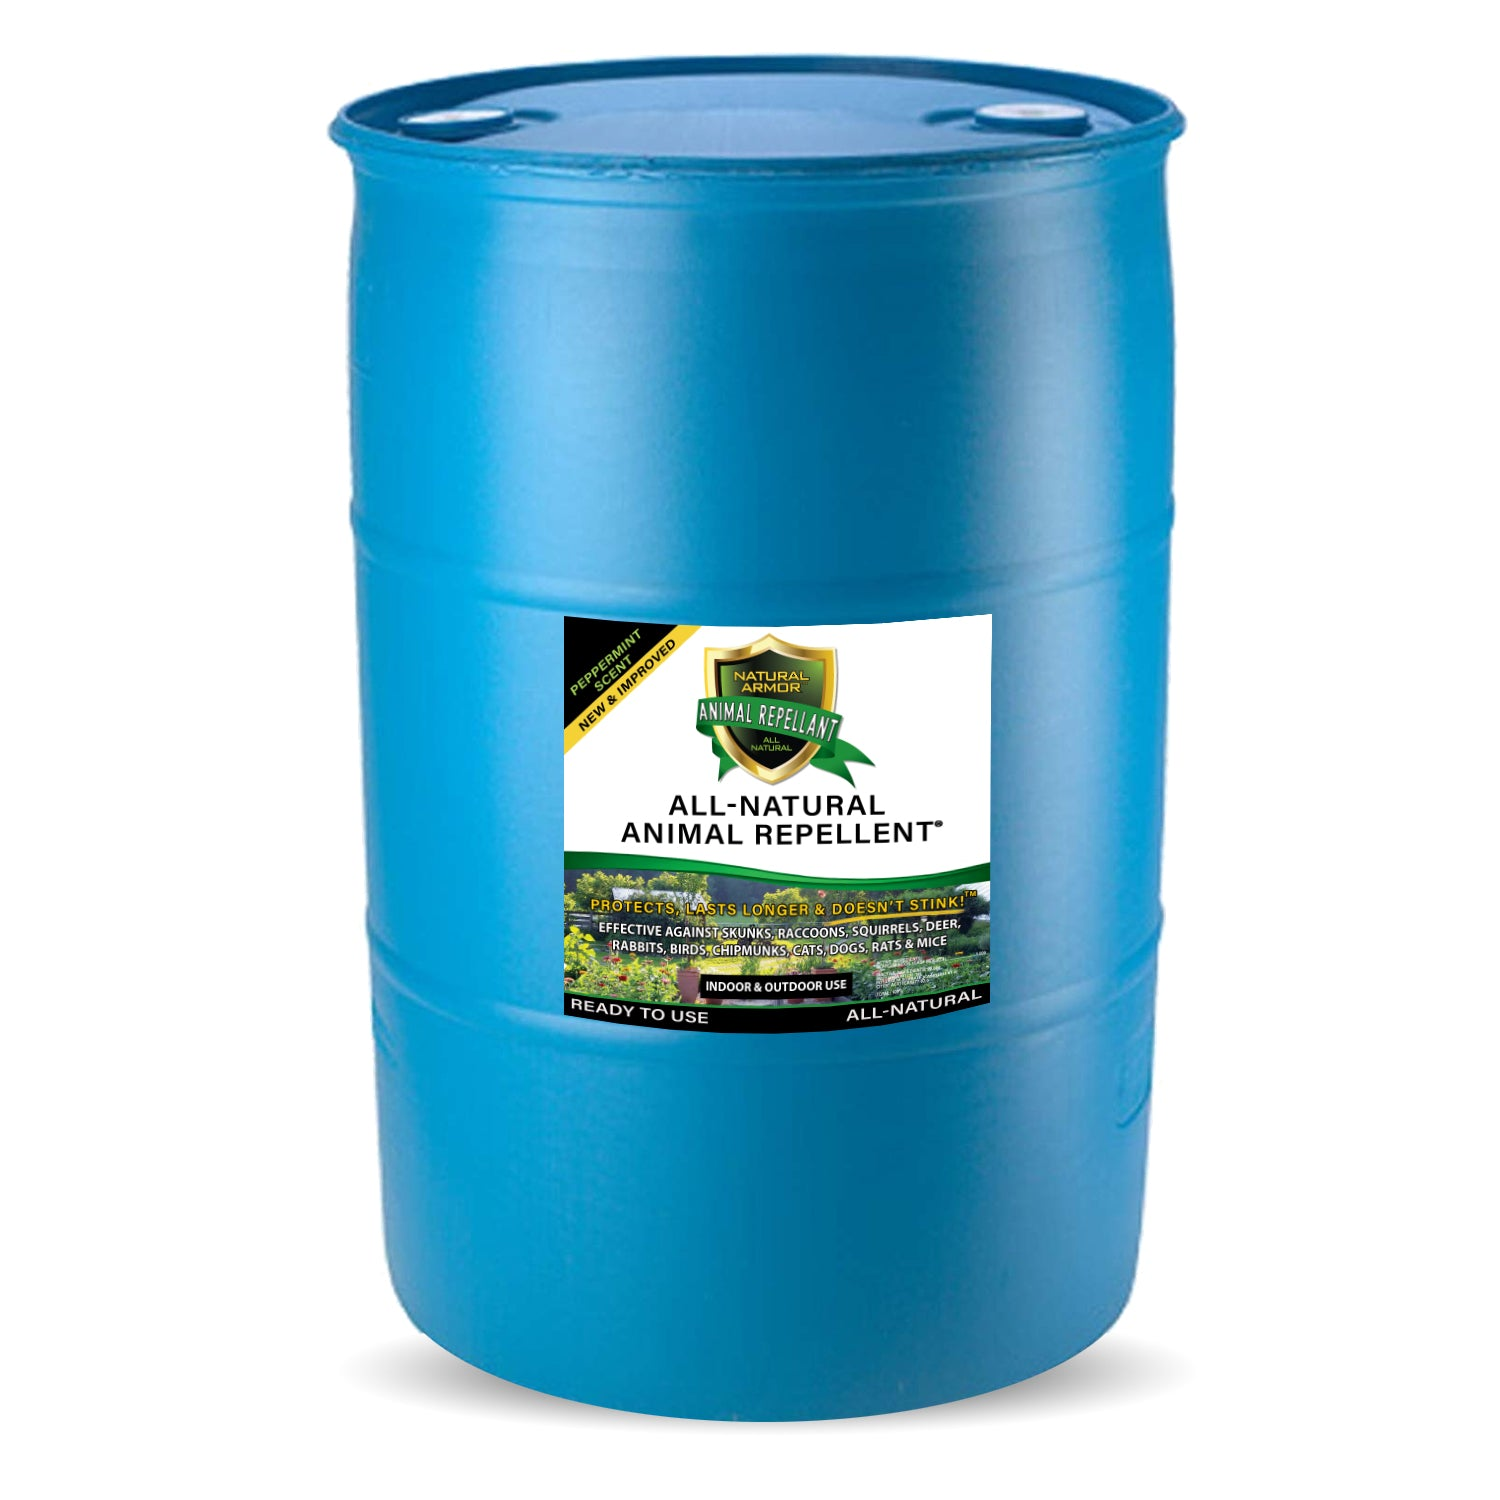 Animal Repellent - Ready to Use - Peppermint - (1) 30 Gallon Drum